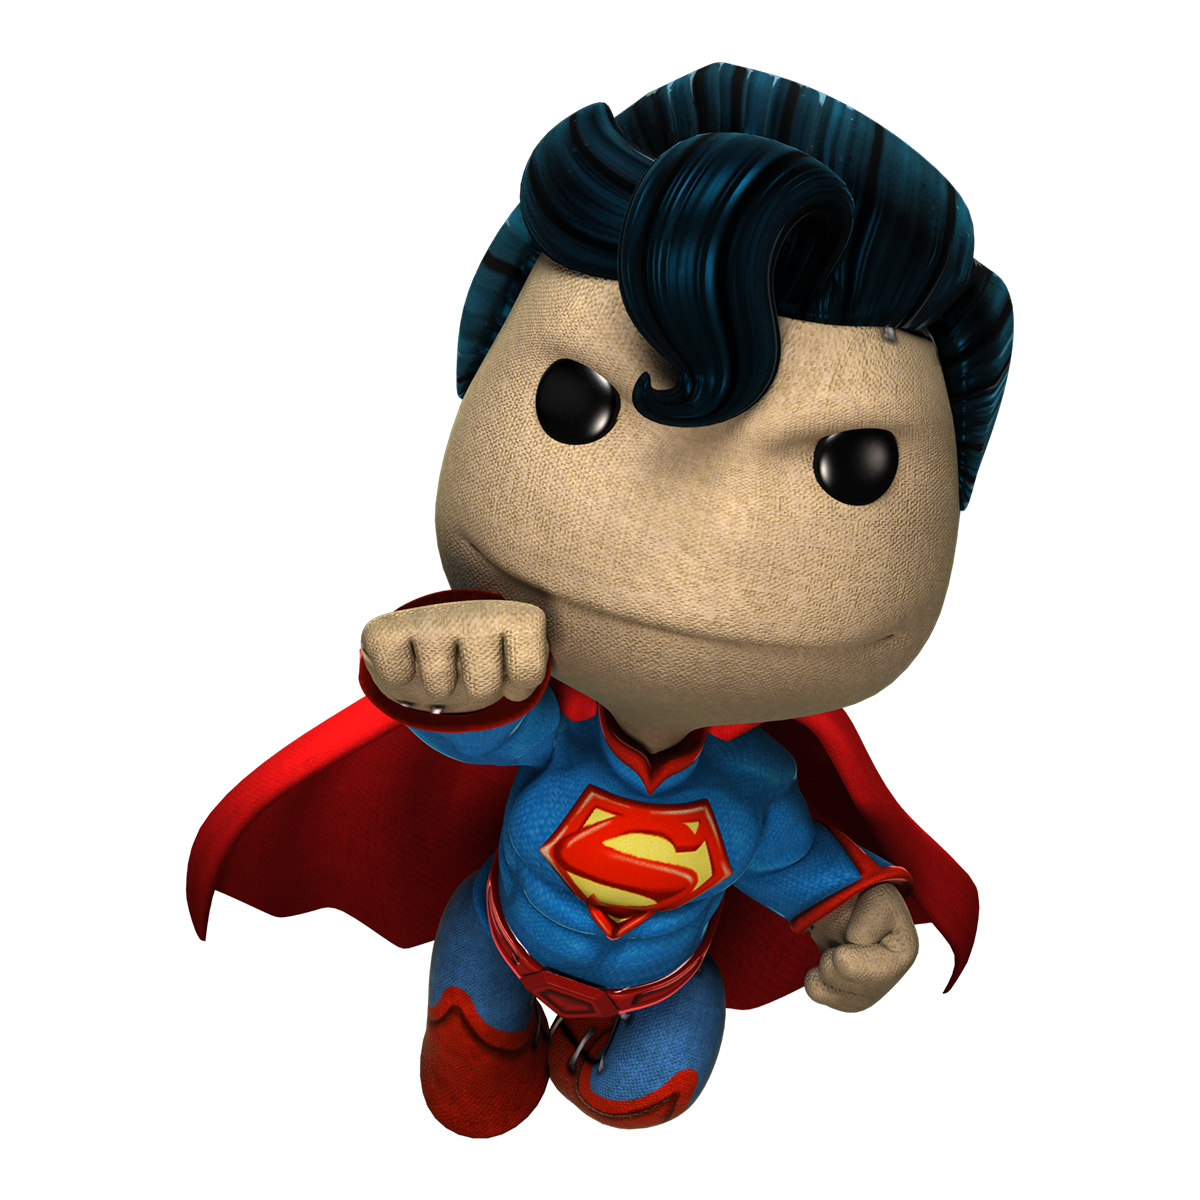 Little big planet 3 png. Superman littlebigplanet quantum of